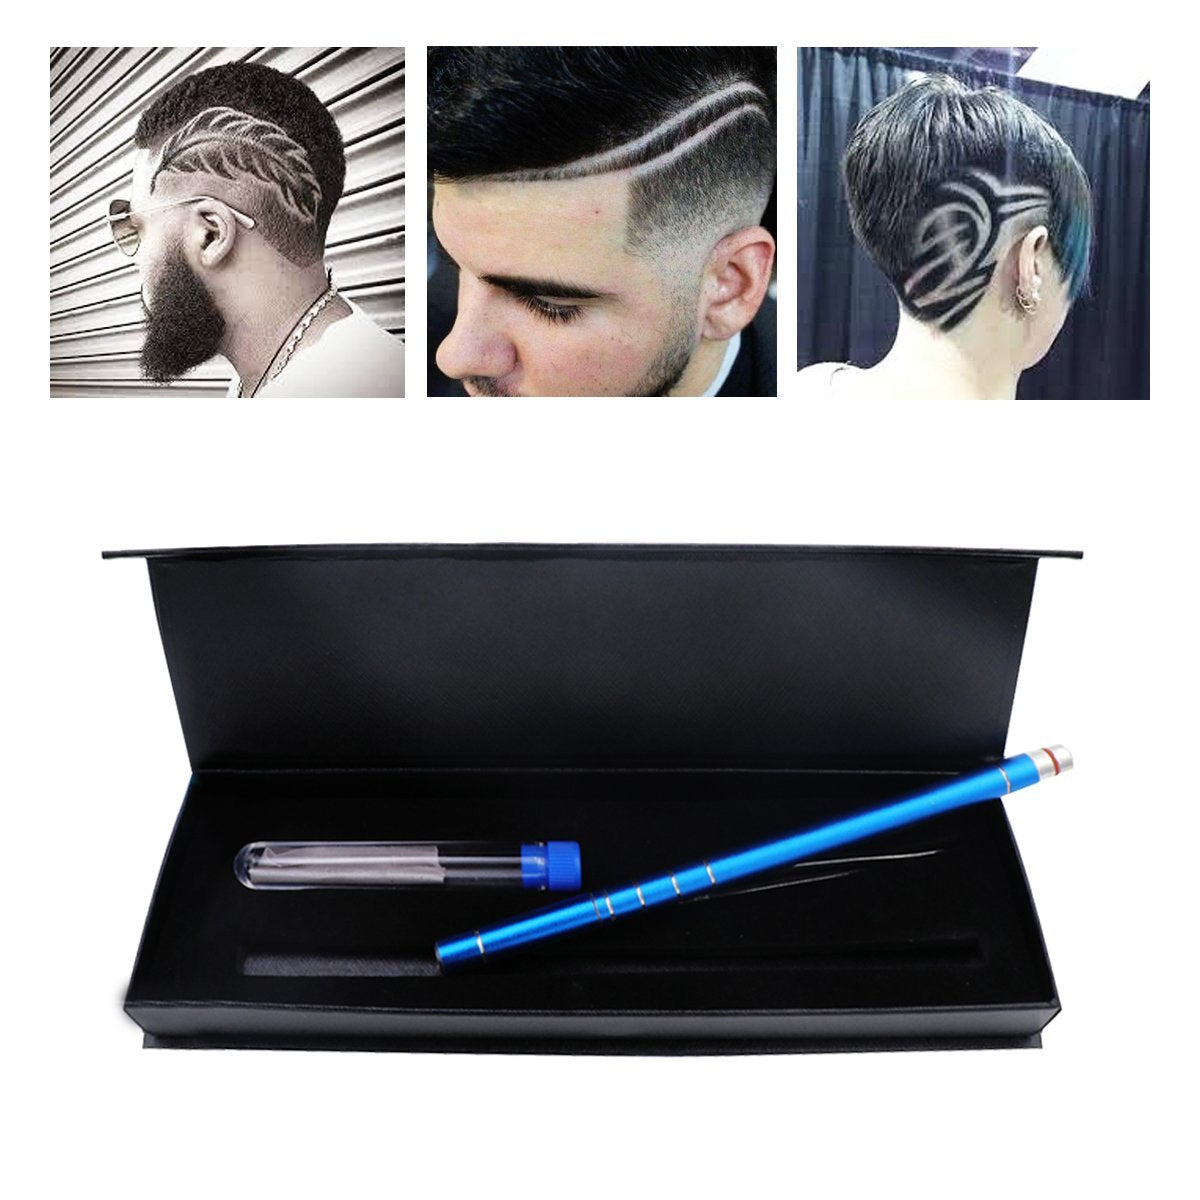 Hair Tattoo Trim Styling Face Eyebrow Shaping Device Ociga Engraved